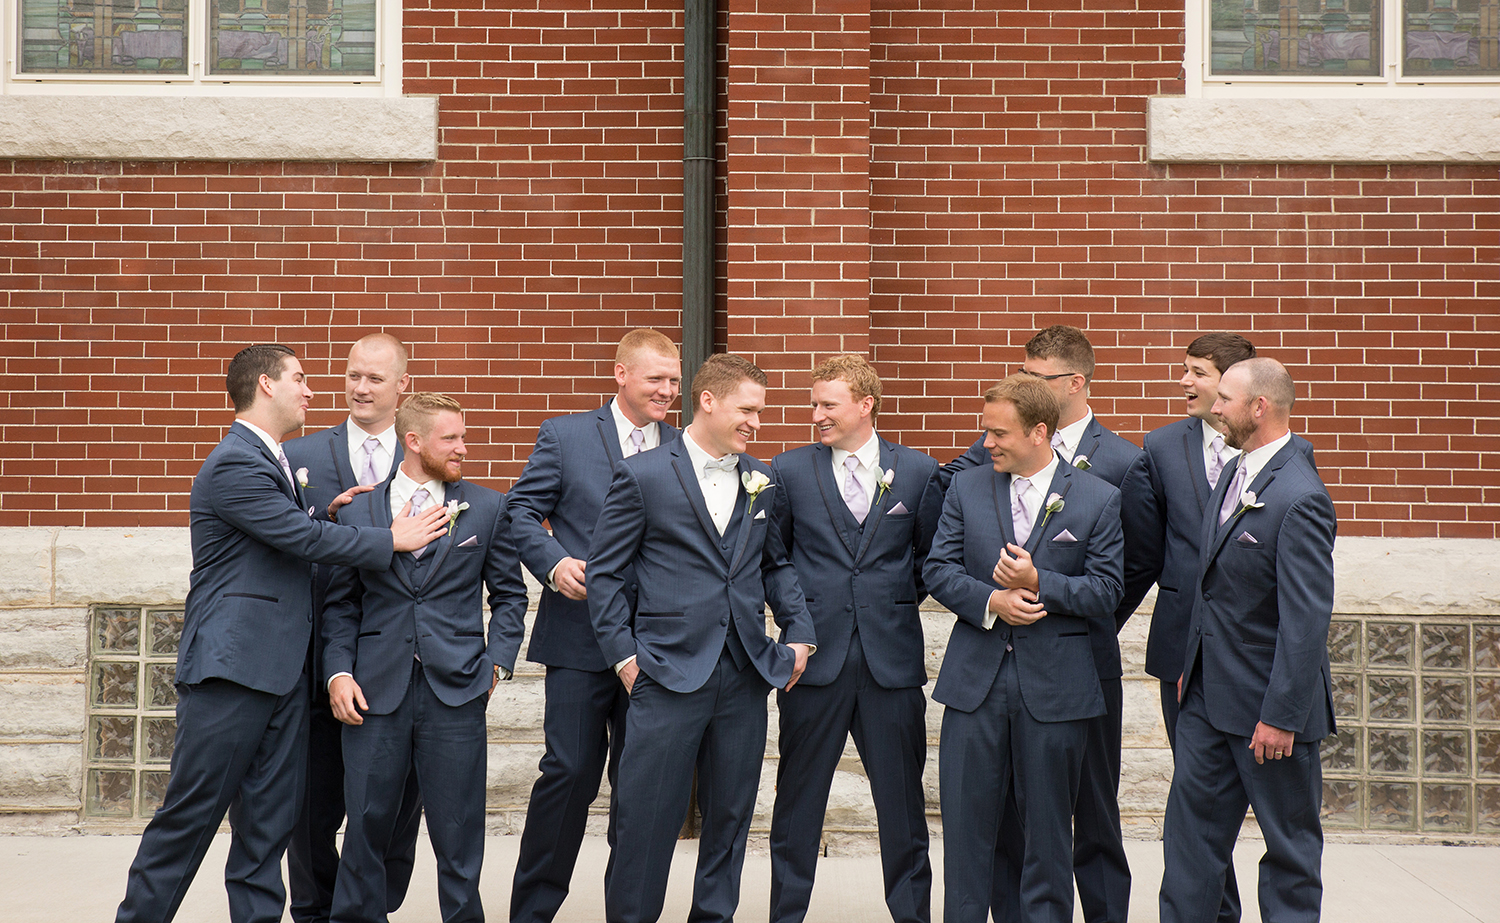 modern wedding photography, storytelling photography, navy suits, Coldwater Ohio